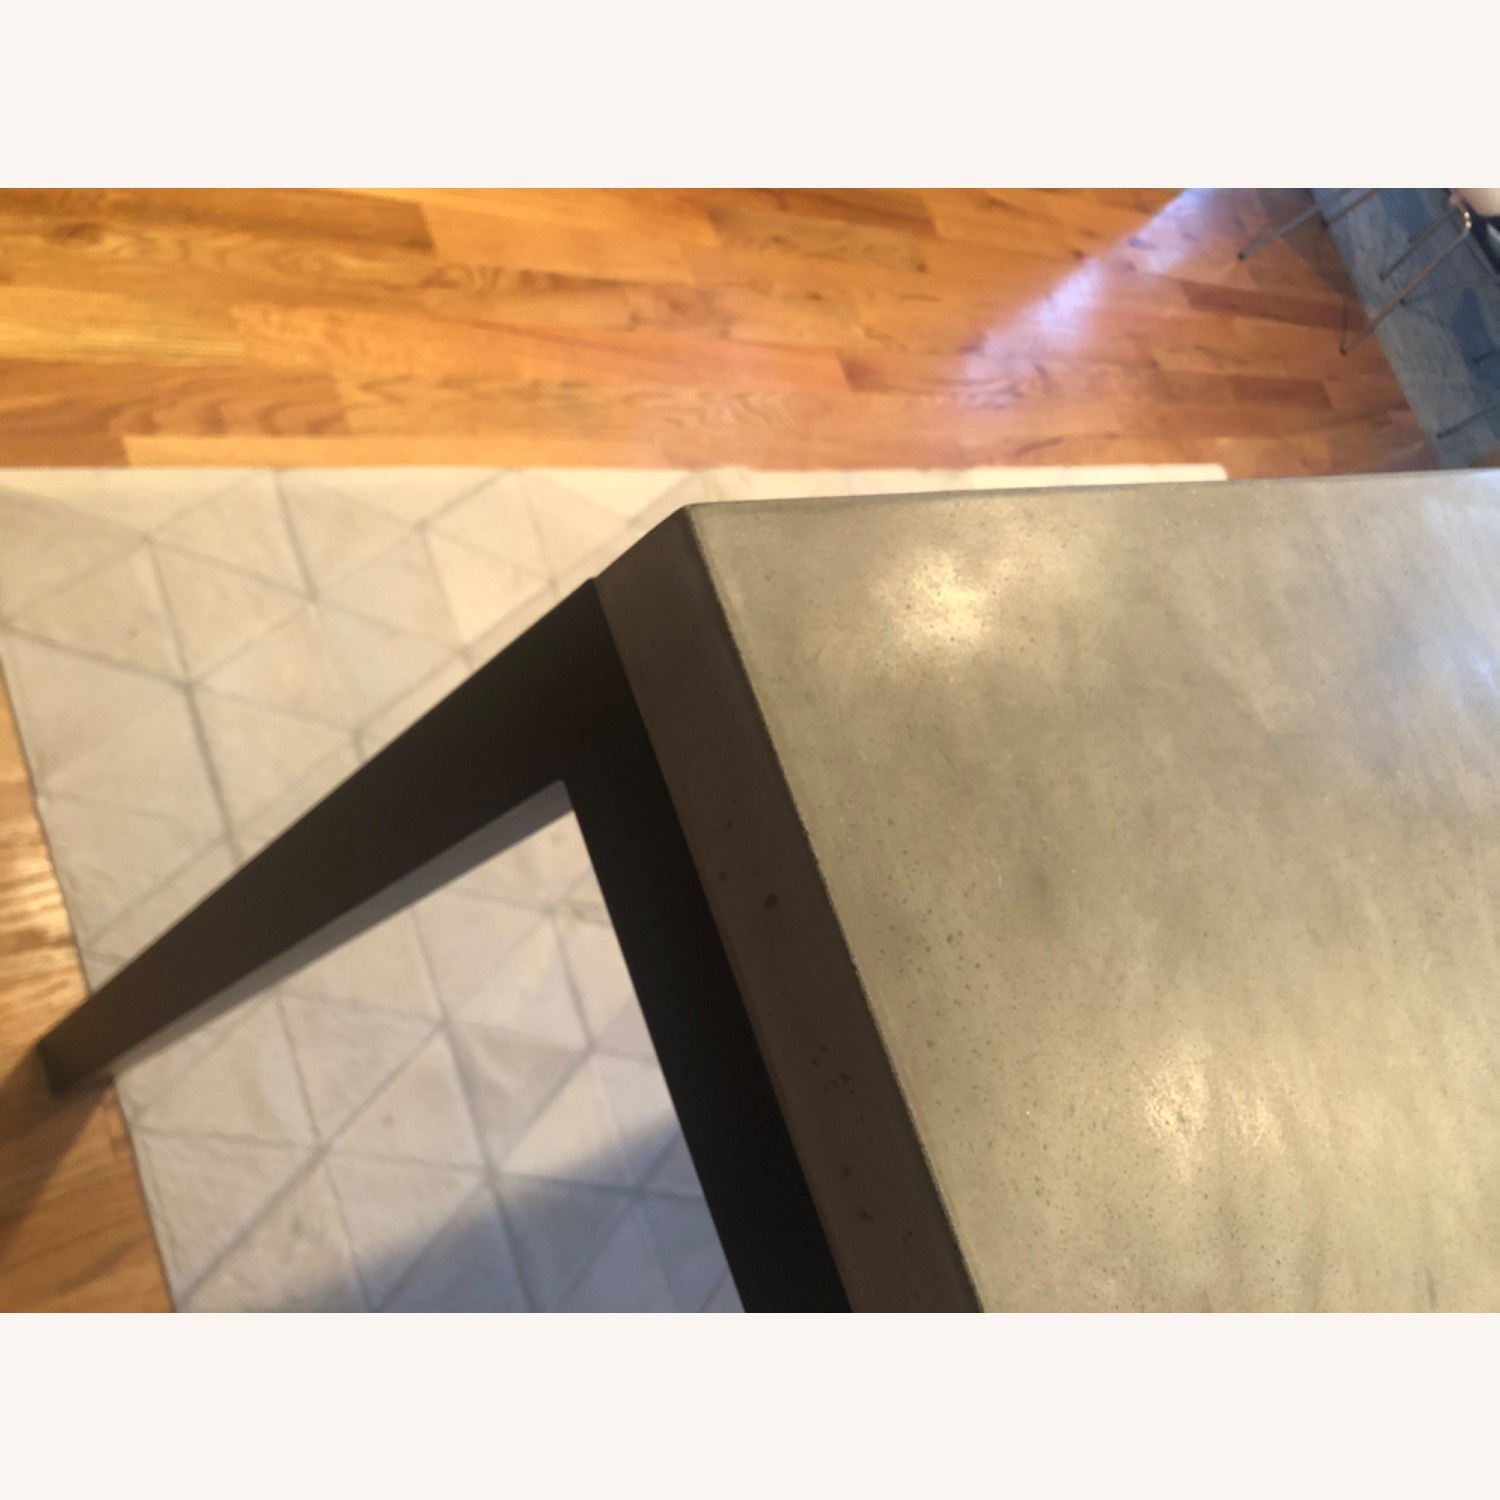 Crate & Barrel Concrete High Dining Table - image-14